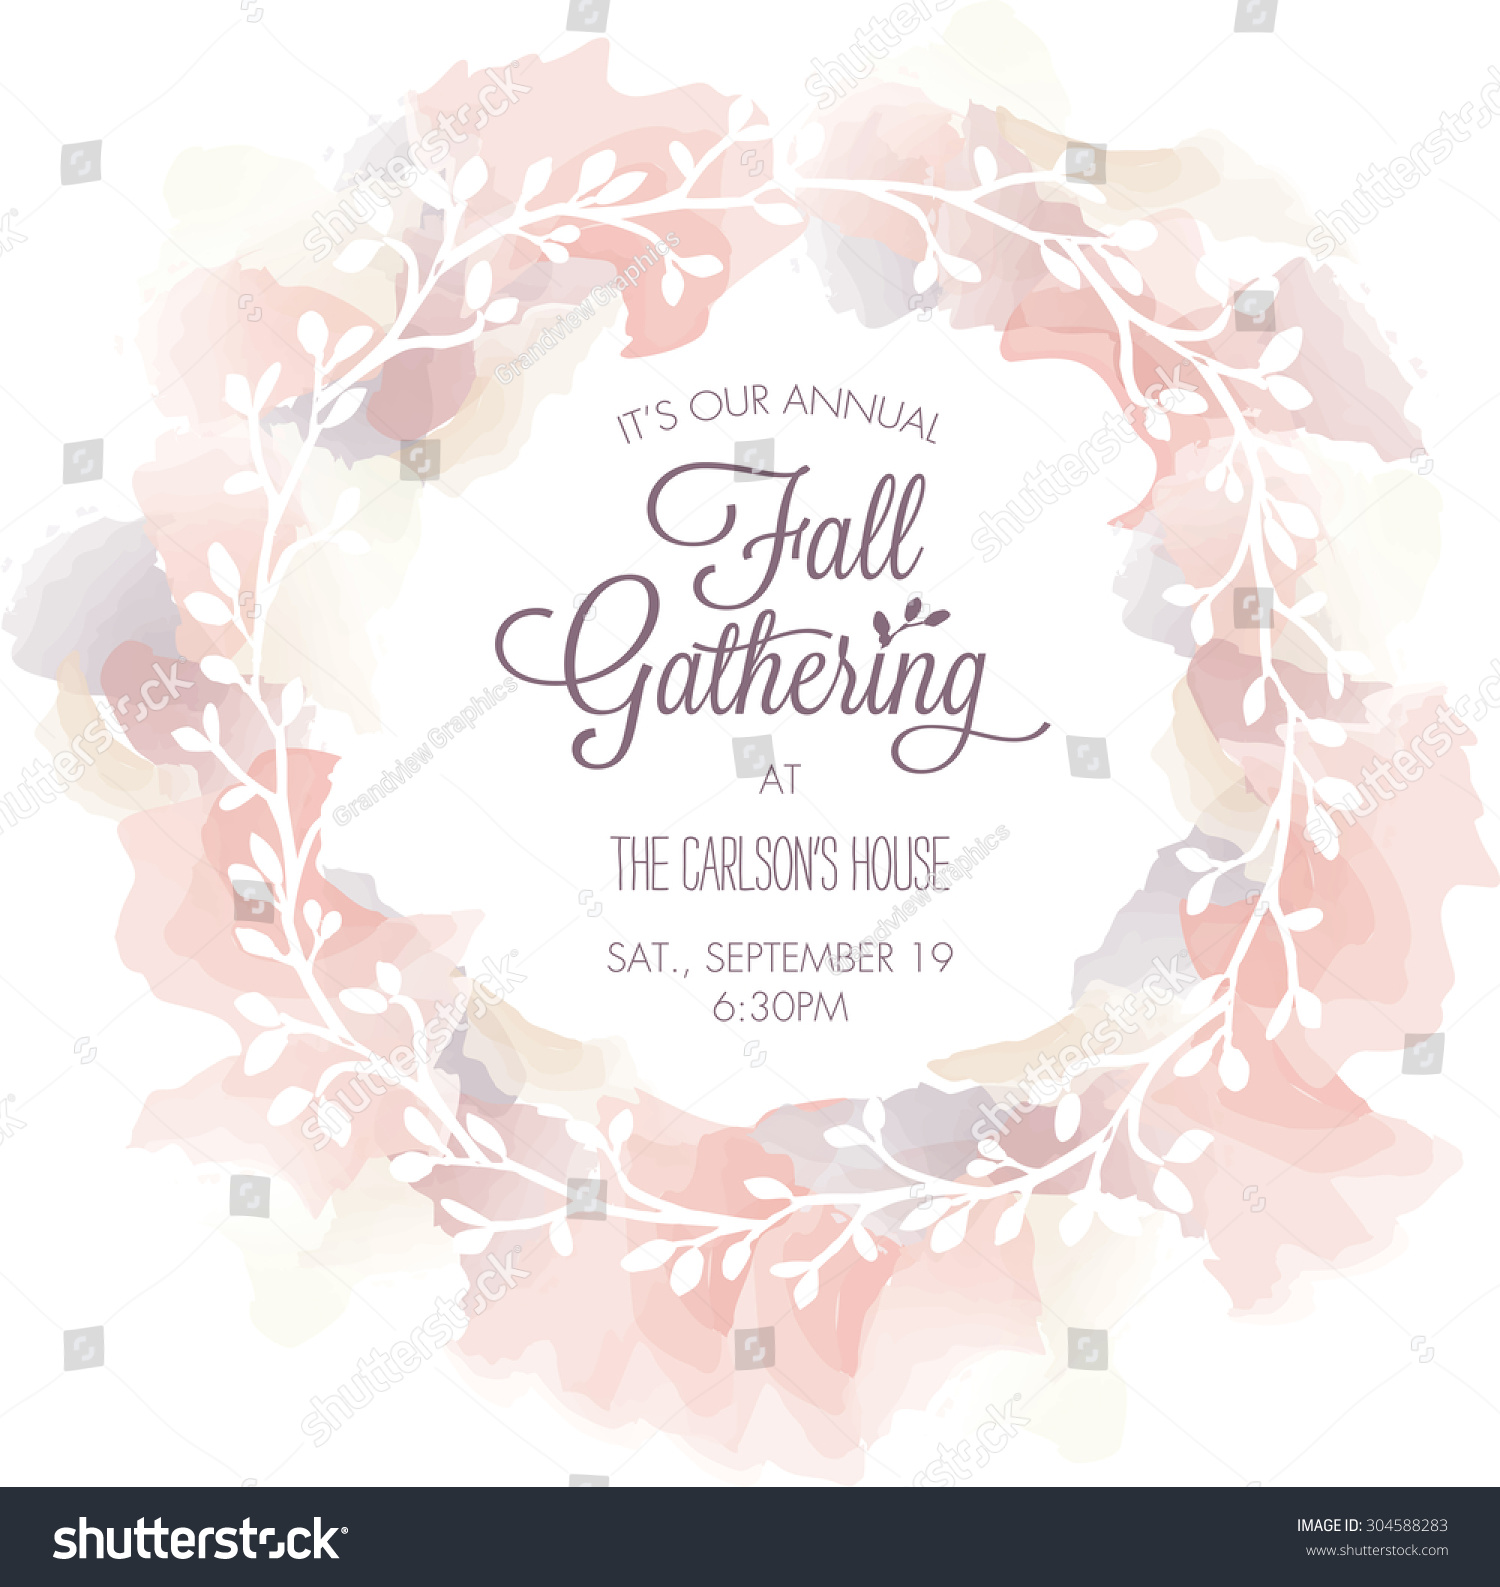 Fall gathering invitation template watercolor wreath stock vector fall gathering invitation template with watercolor wreath vector stopboris